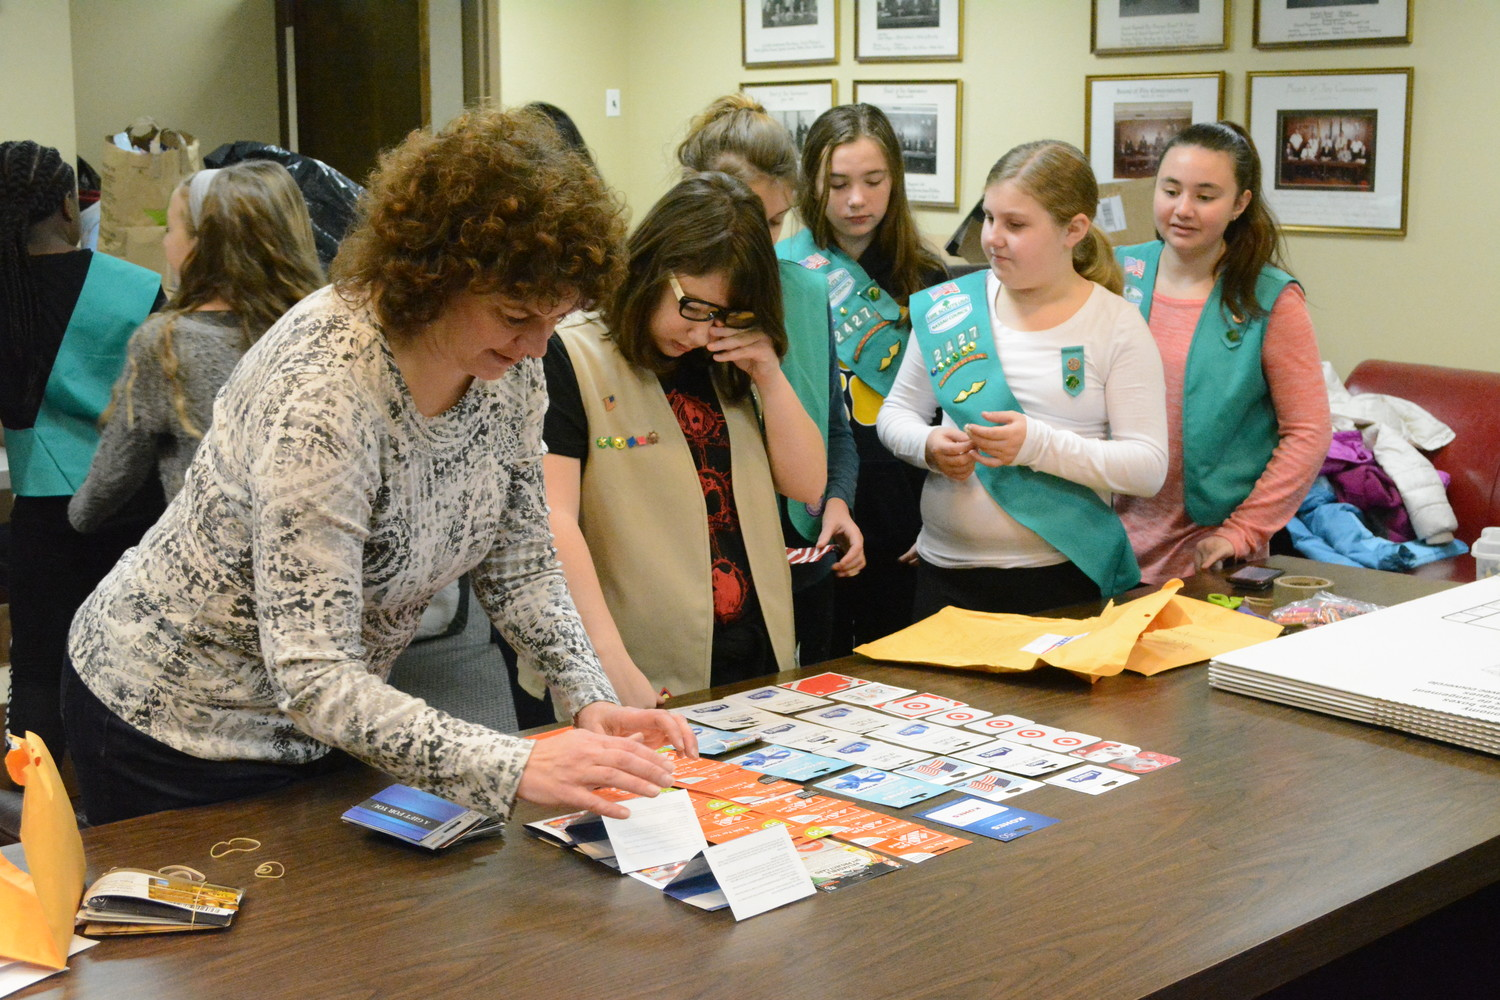 Elaine Notarstefano, leader of Girl Scout Troop #2315, helped sort through thousands of dollars worth of gift cards.